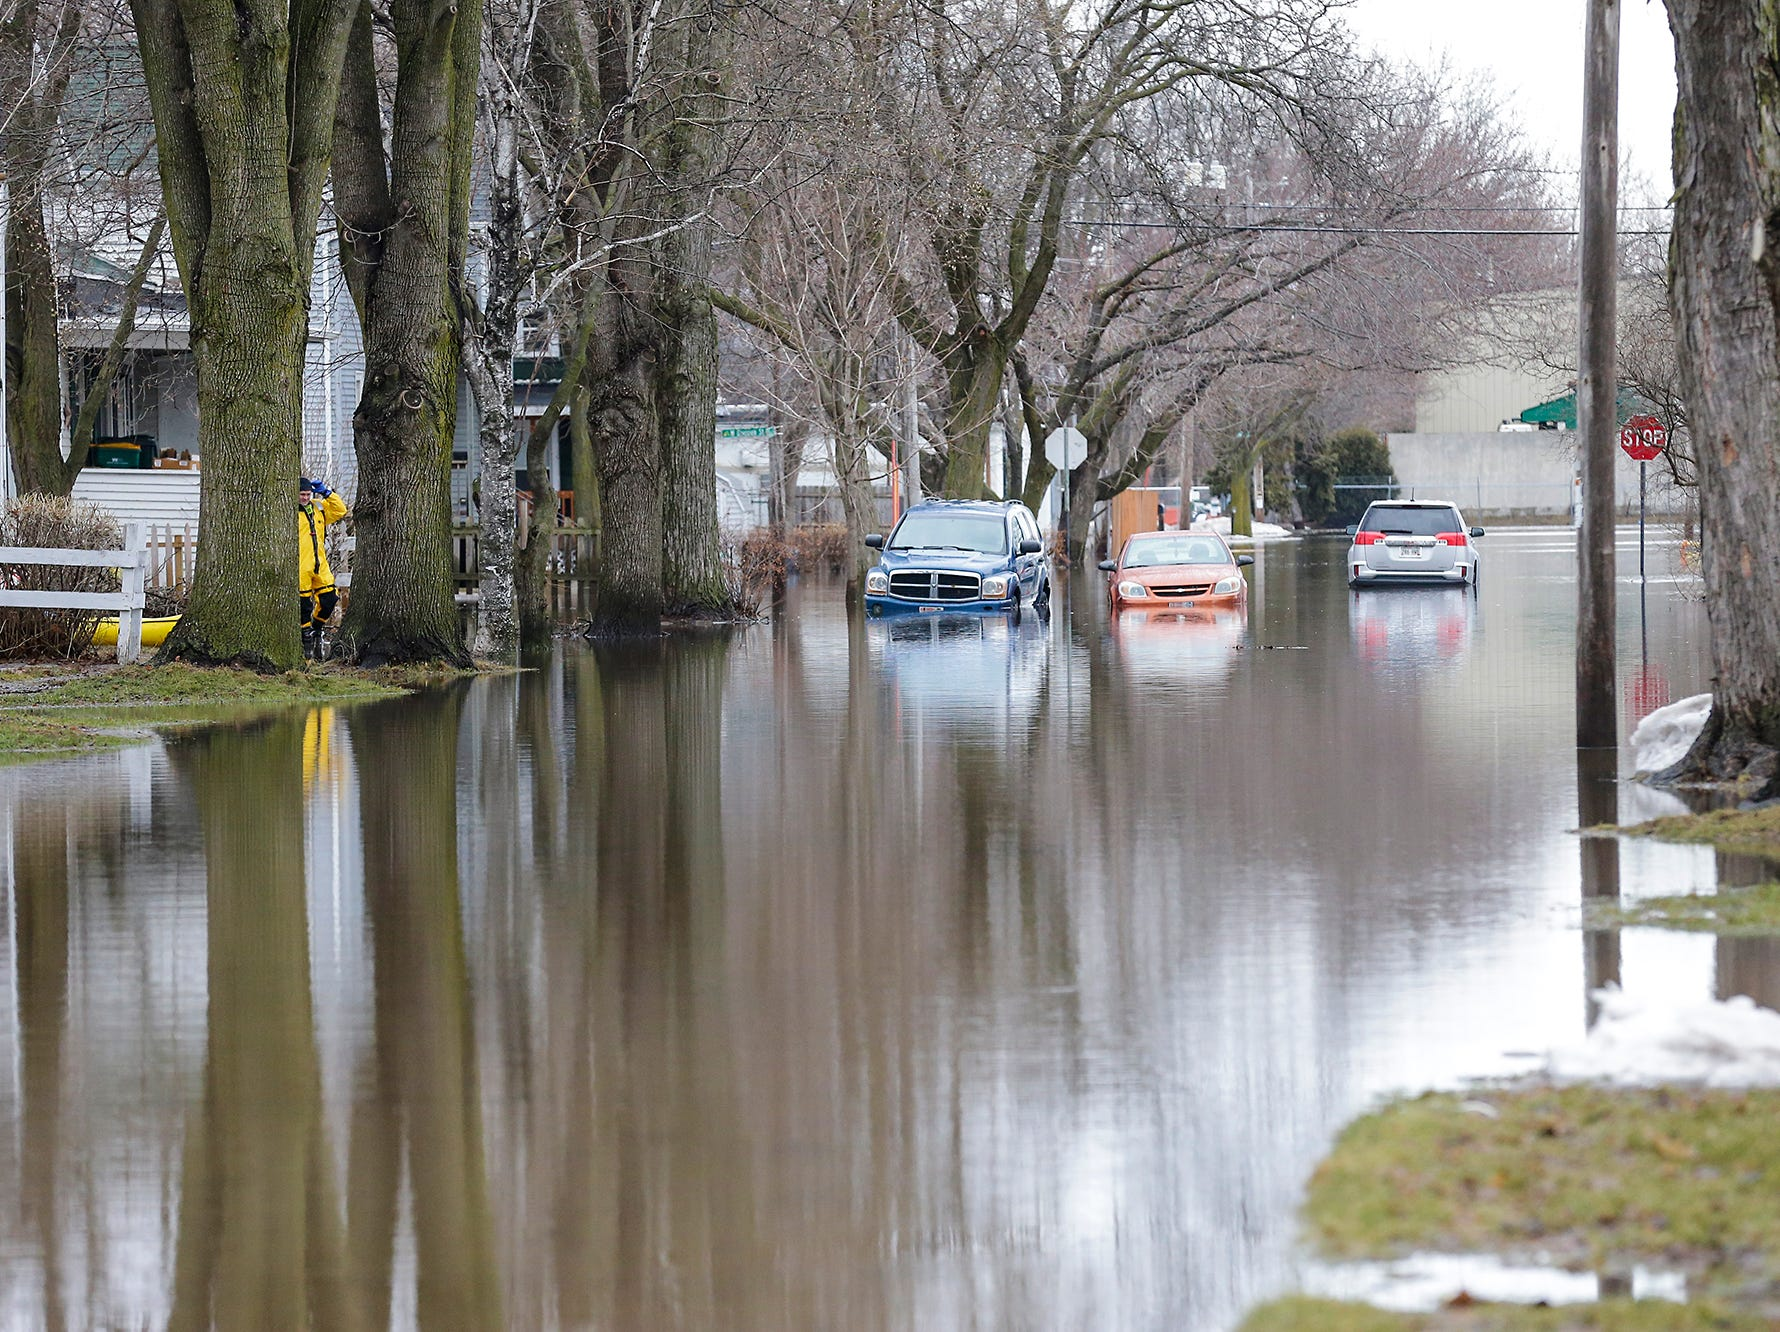 Stalled cars sit in flood waters Friday, March 15, 2019 on Gould Street between Division and Forest Streets in Fond du Lac, Wis. Ice jams on the east branch of the Fond du Lac River and heavy rain caused widespread flooding problems in the city on Thursday the 14th. Doug Raflik/USA TODAY NETWORK-Wisconsin